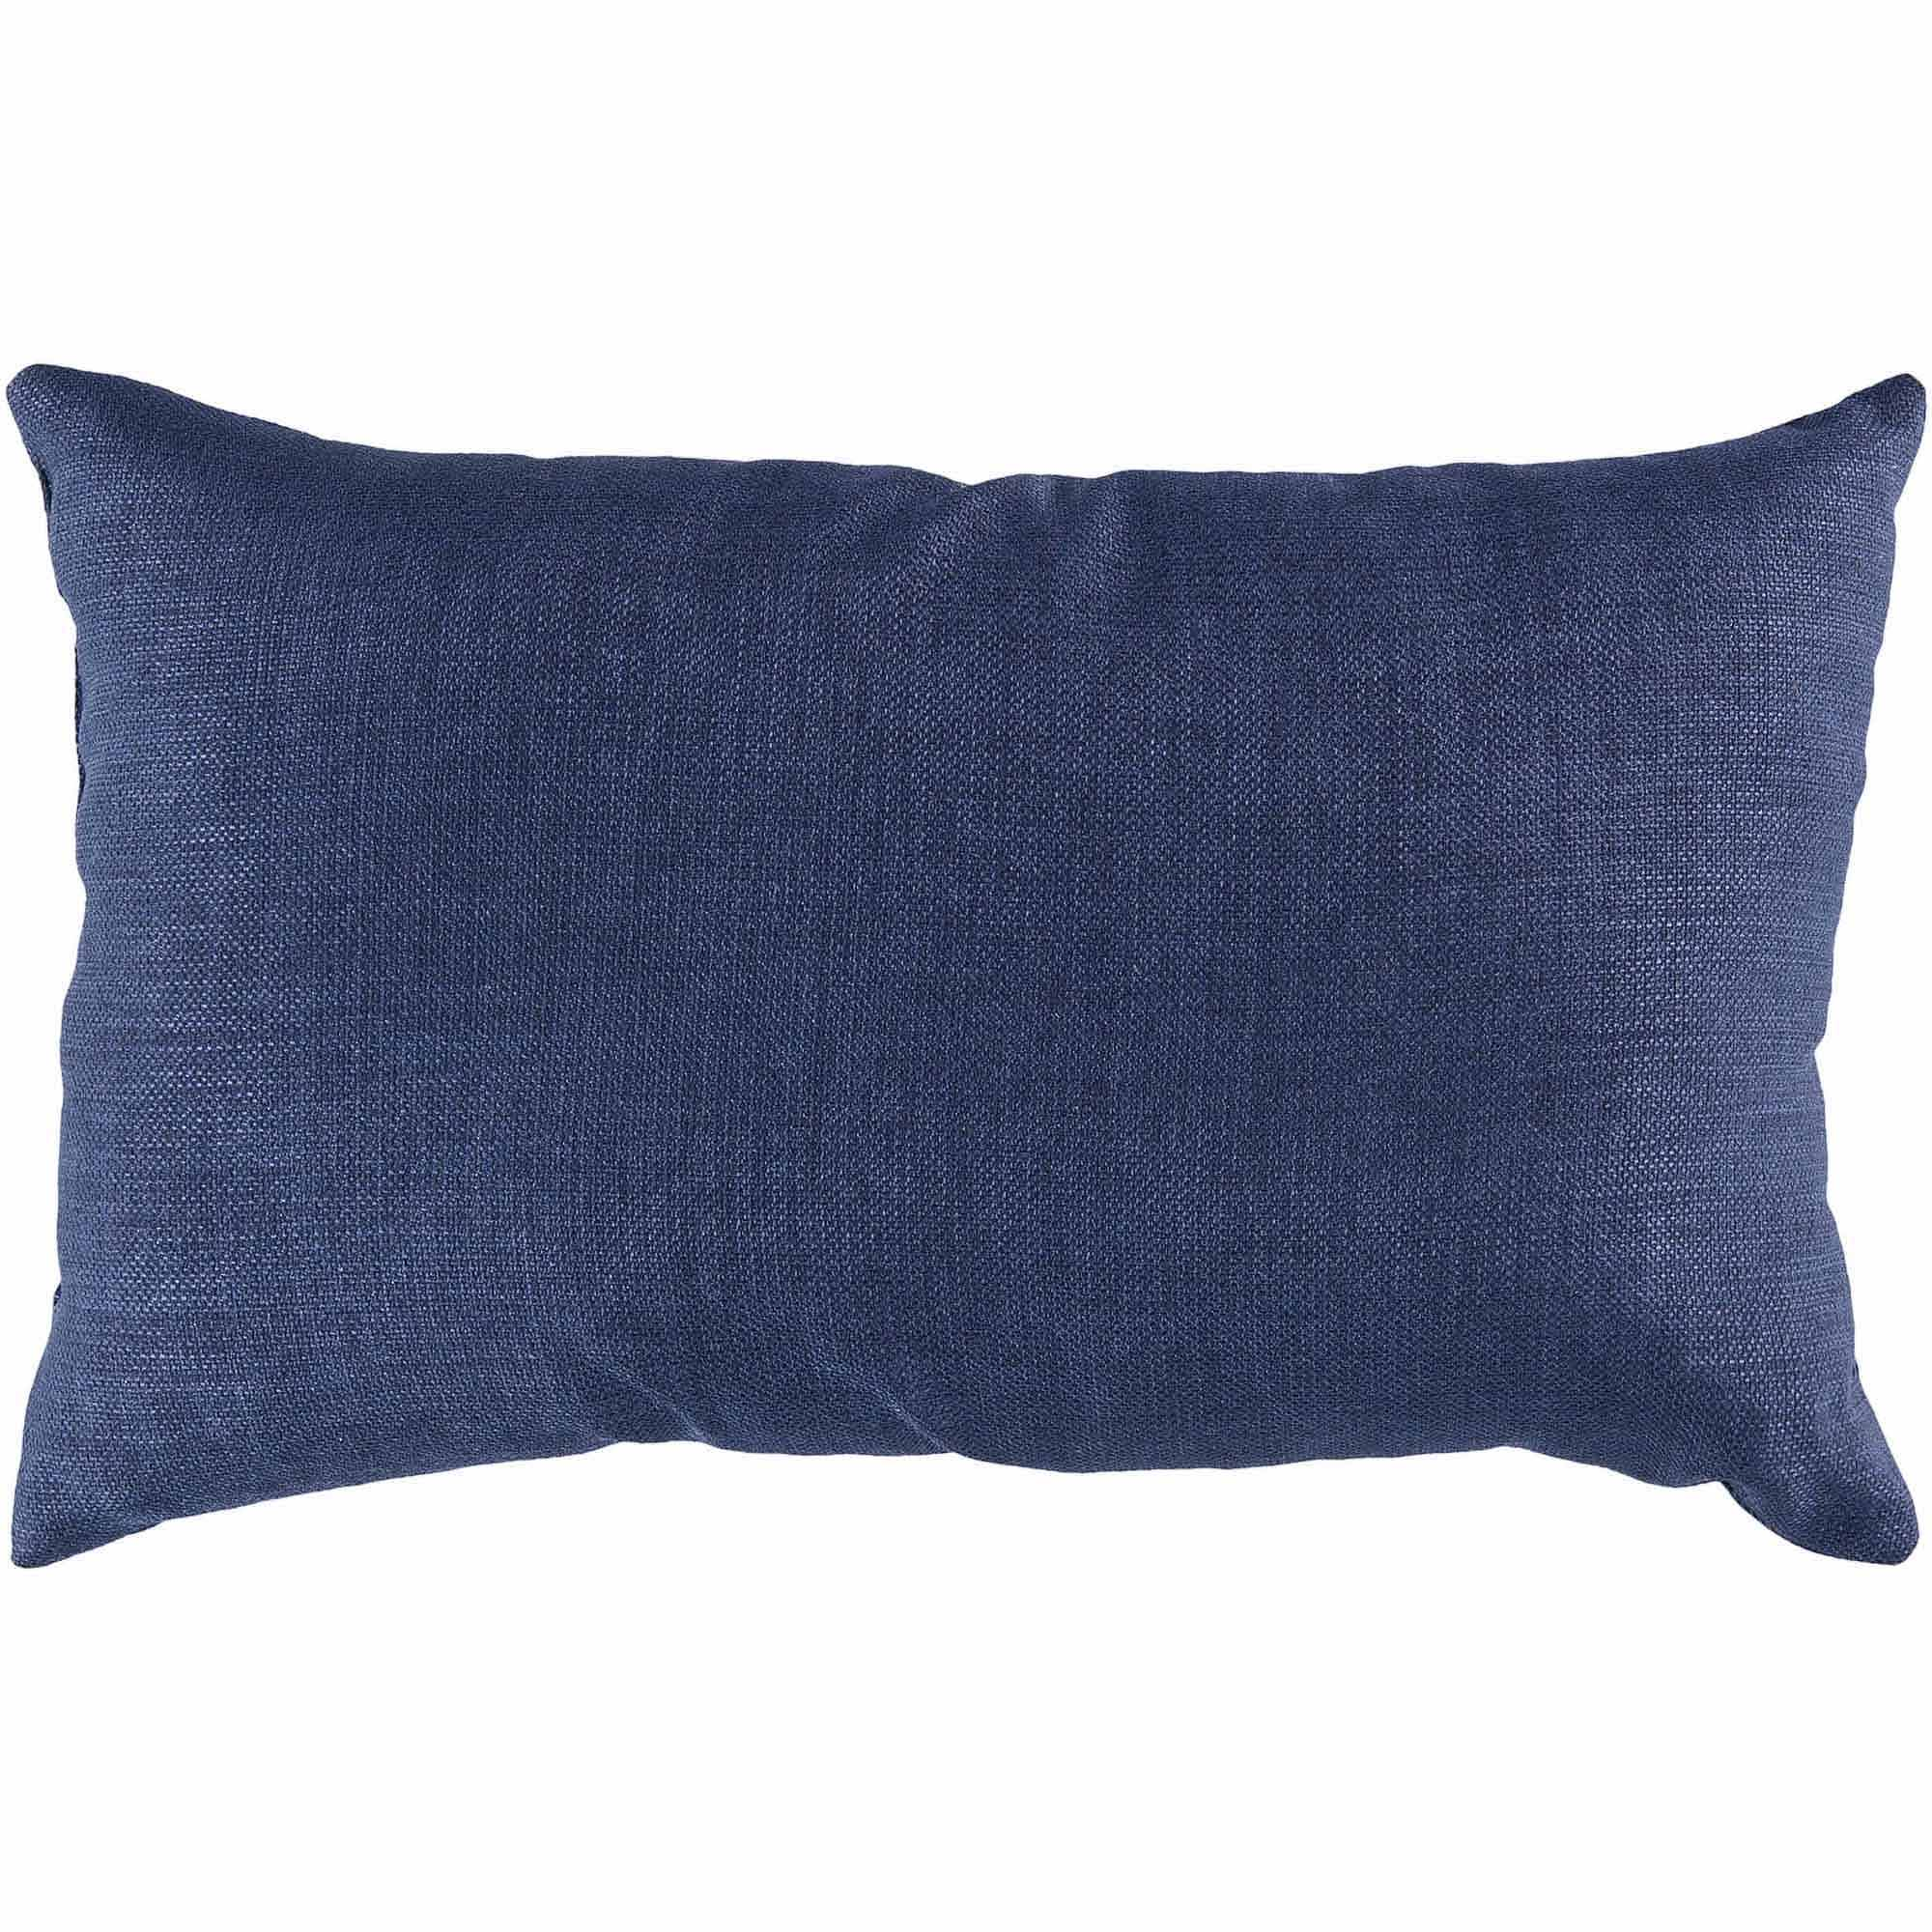 Art of Knot Miami Hand Crafted Solid Indoor/Outdoor Decorative Pillow with Poly Filler, Navy